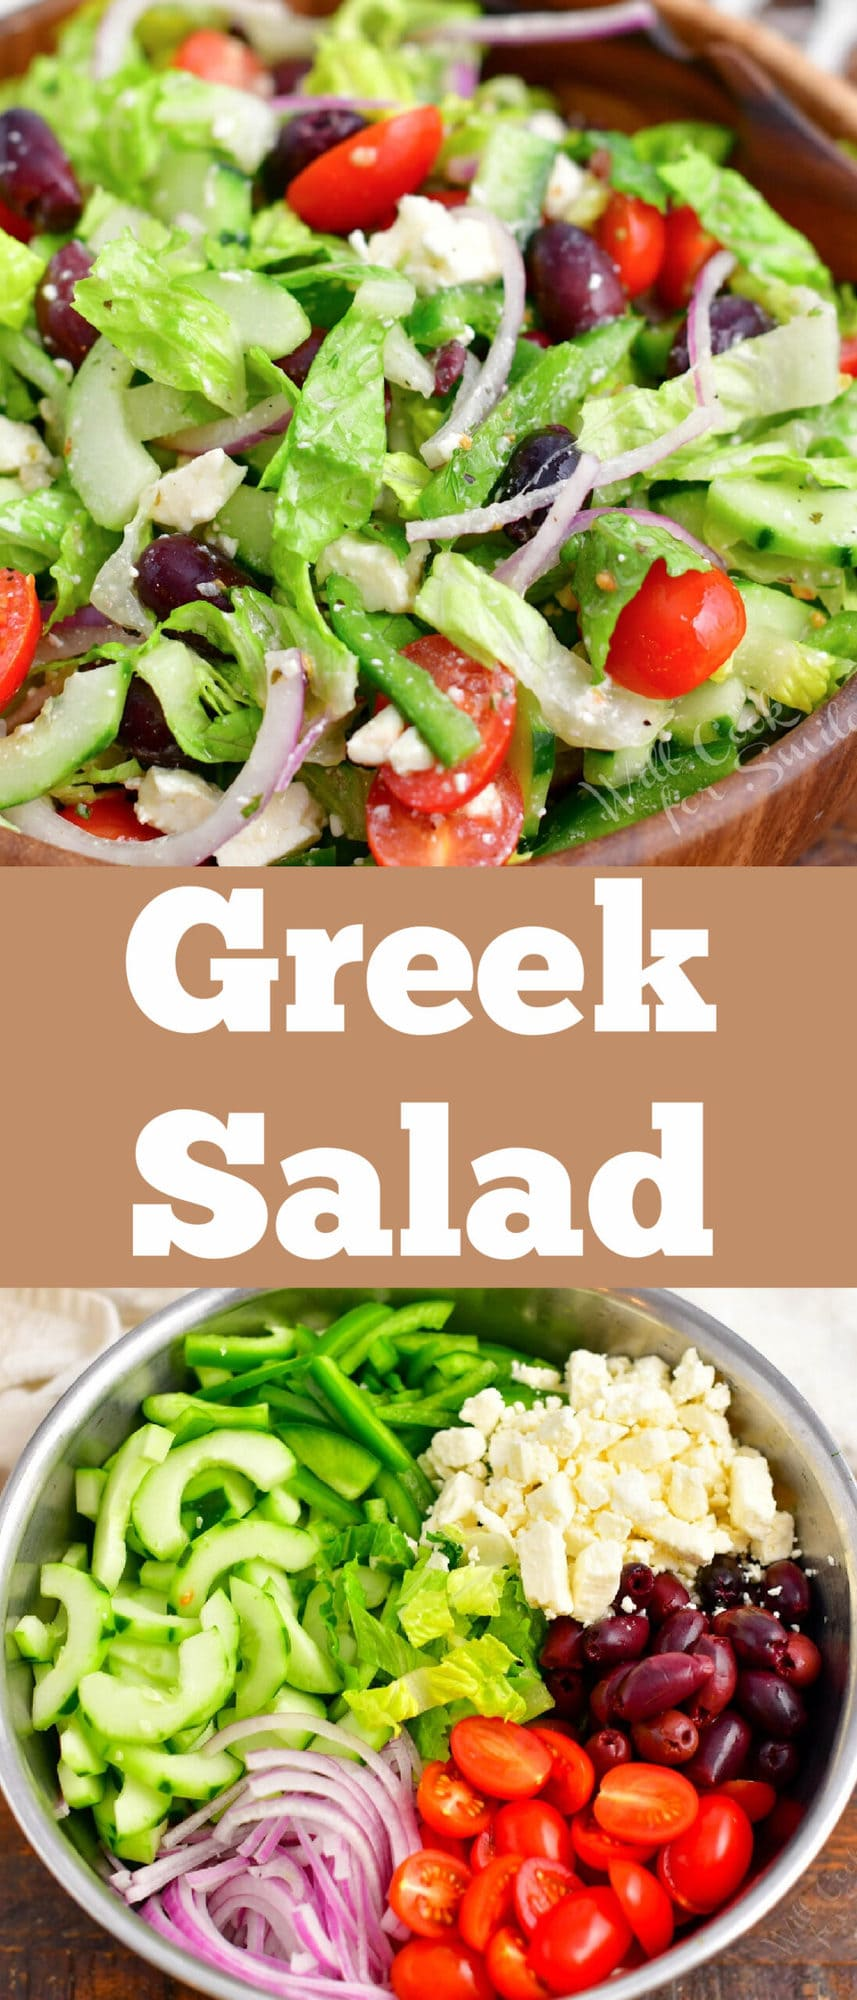 title collage of mixed Green salad and salad ingredients in a bowl